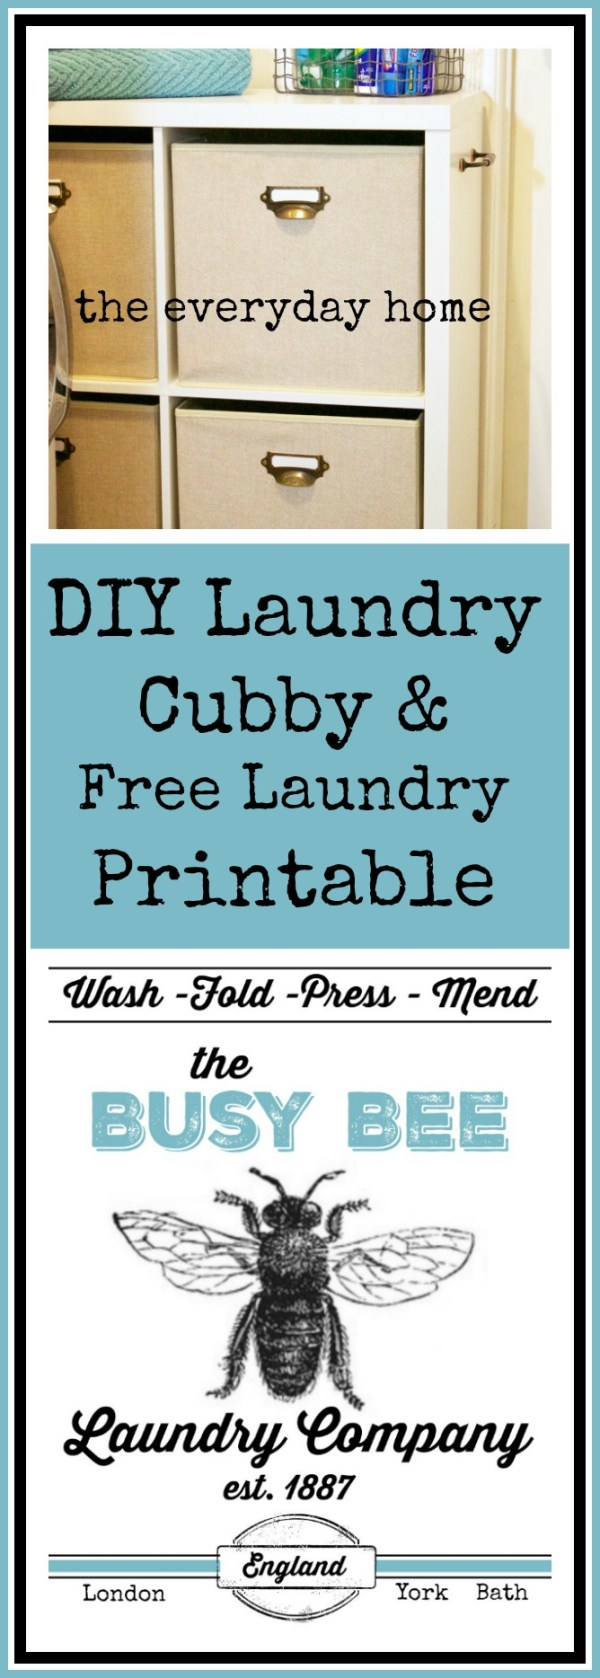 diy-laundry-cubby-on-wheels-and-laundry-printable | The Everyday Home | www.everydayhomeblog.com